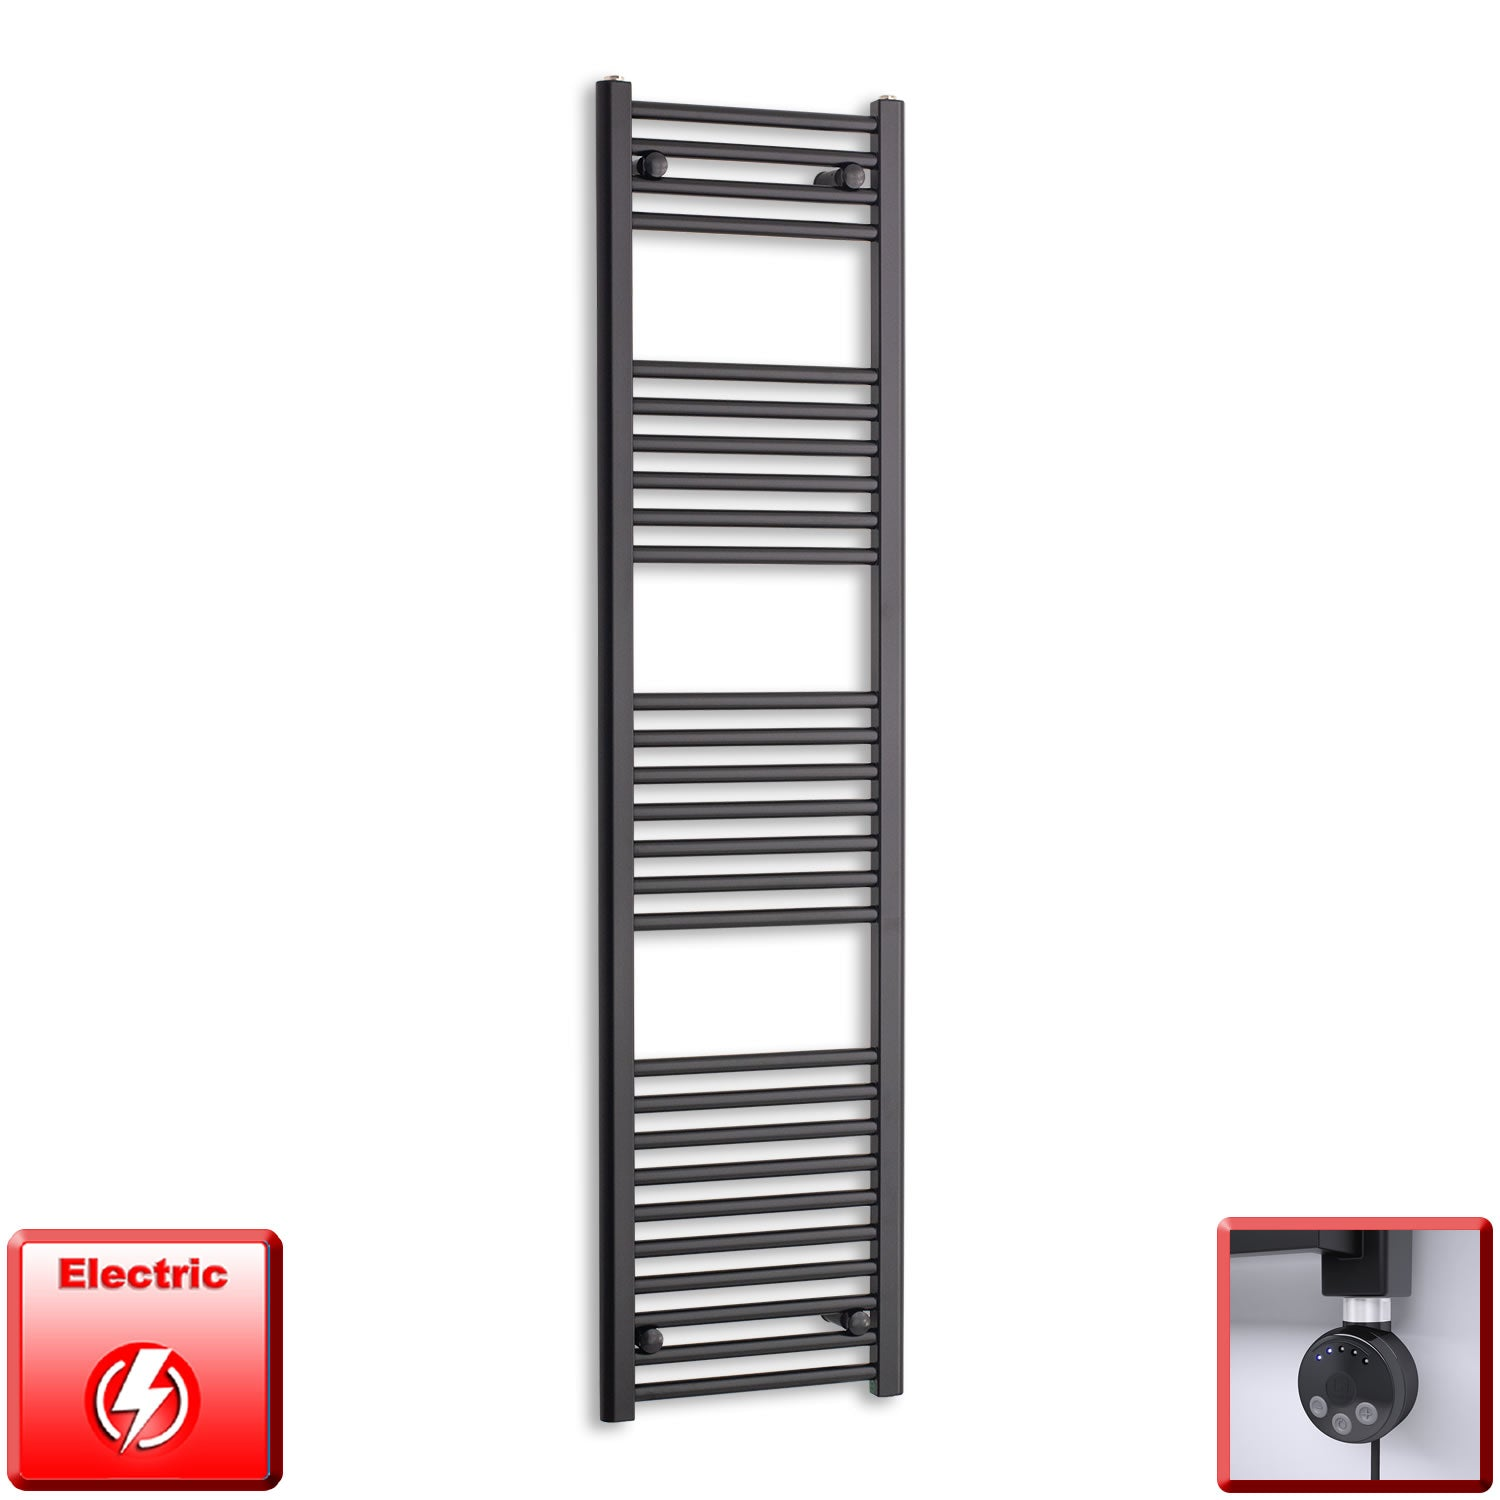 400mm Wide 1600mm High Pre-Filled Black Electric Towel Rail Radiator With Thermostatic MEG Element